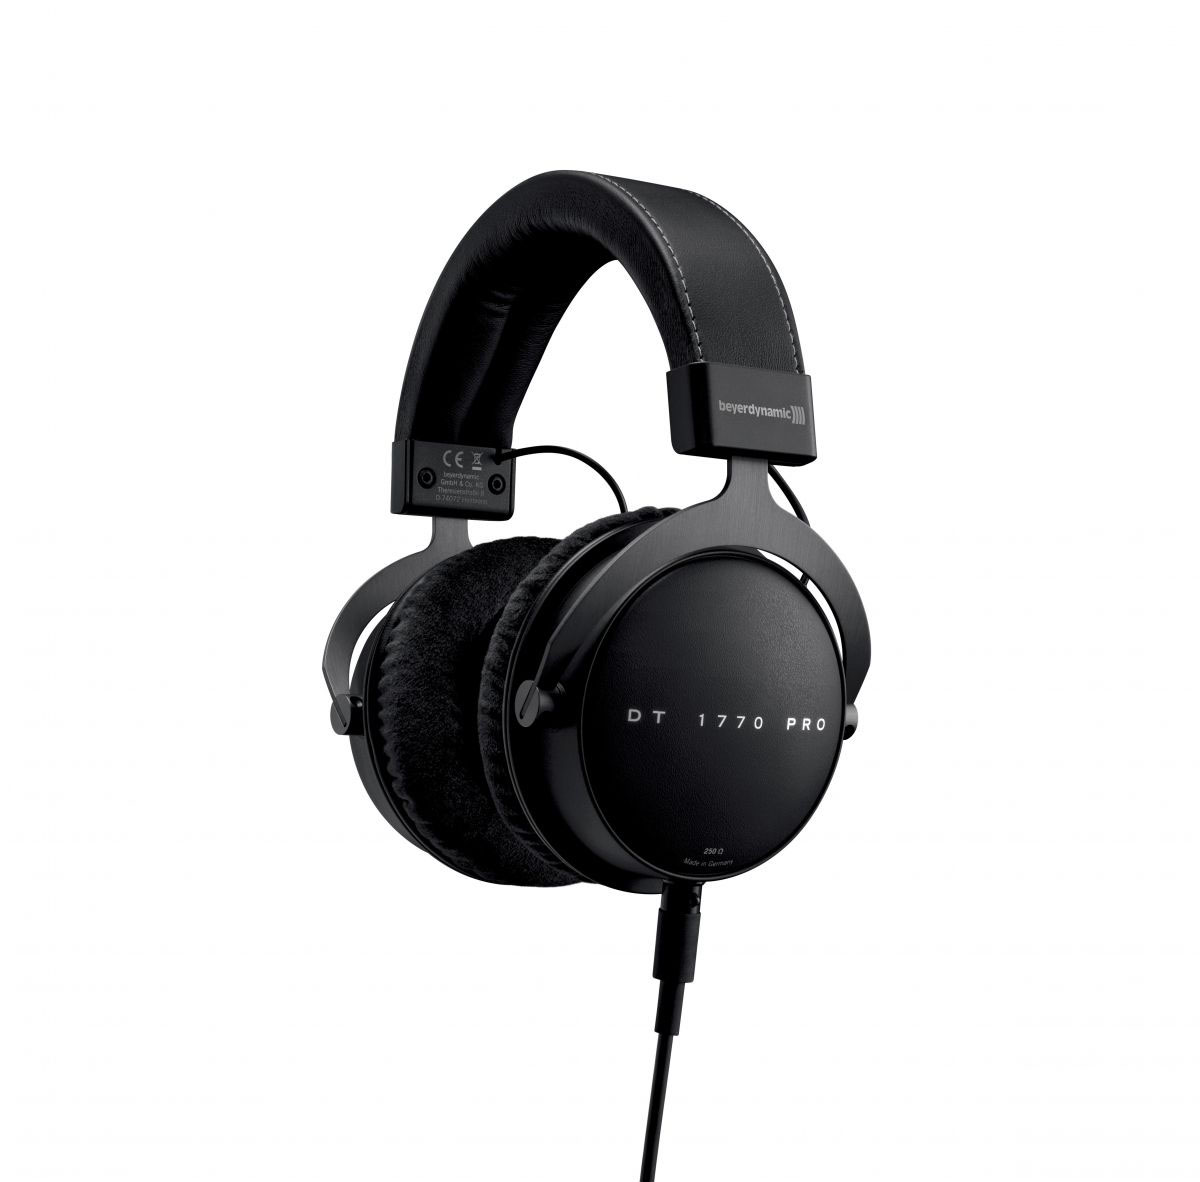 beyerdynamic: headphones, headsets and conference technology